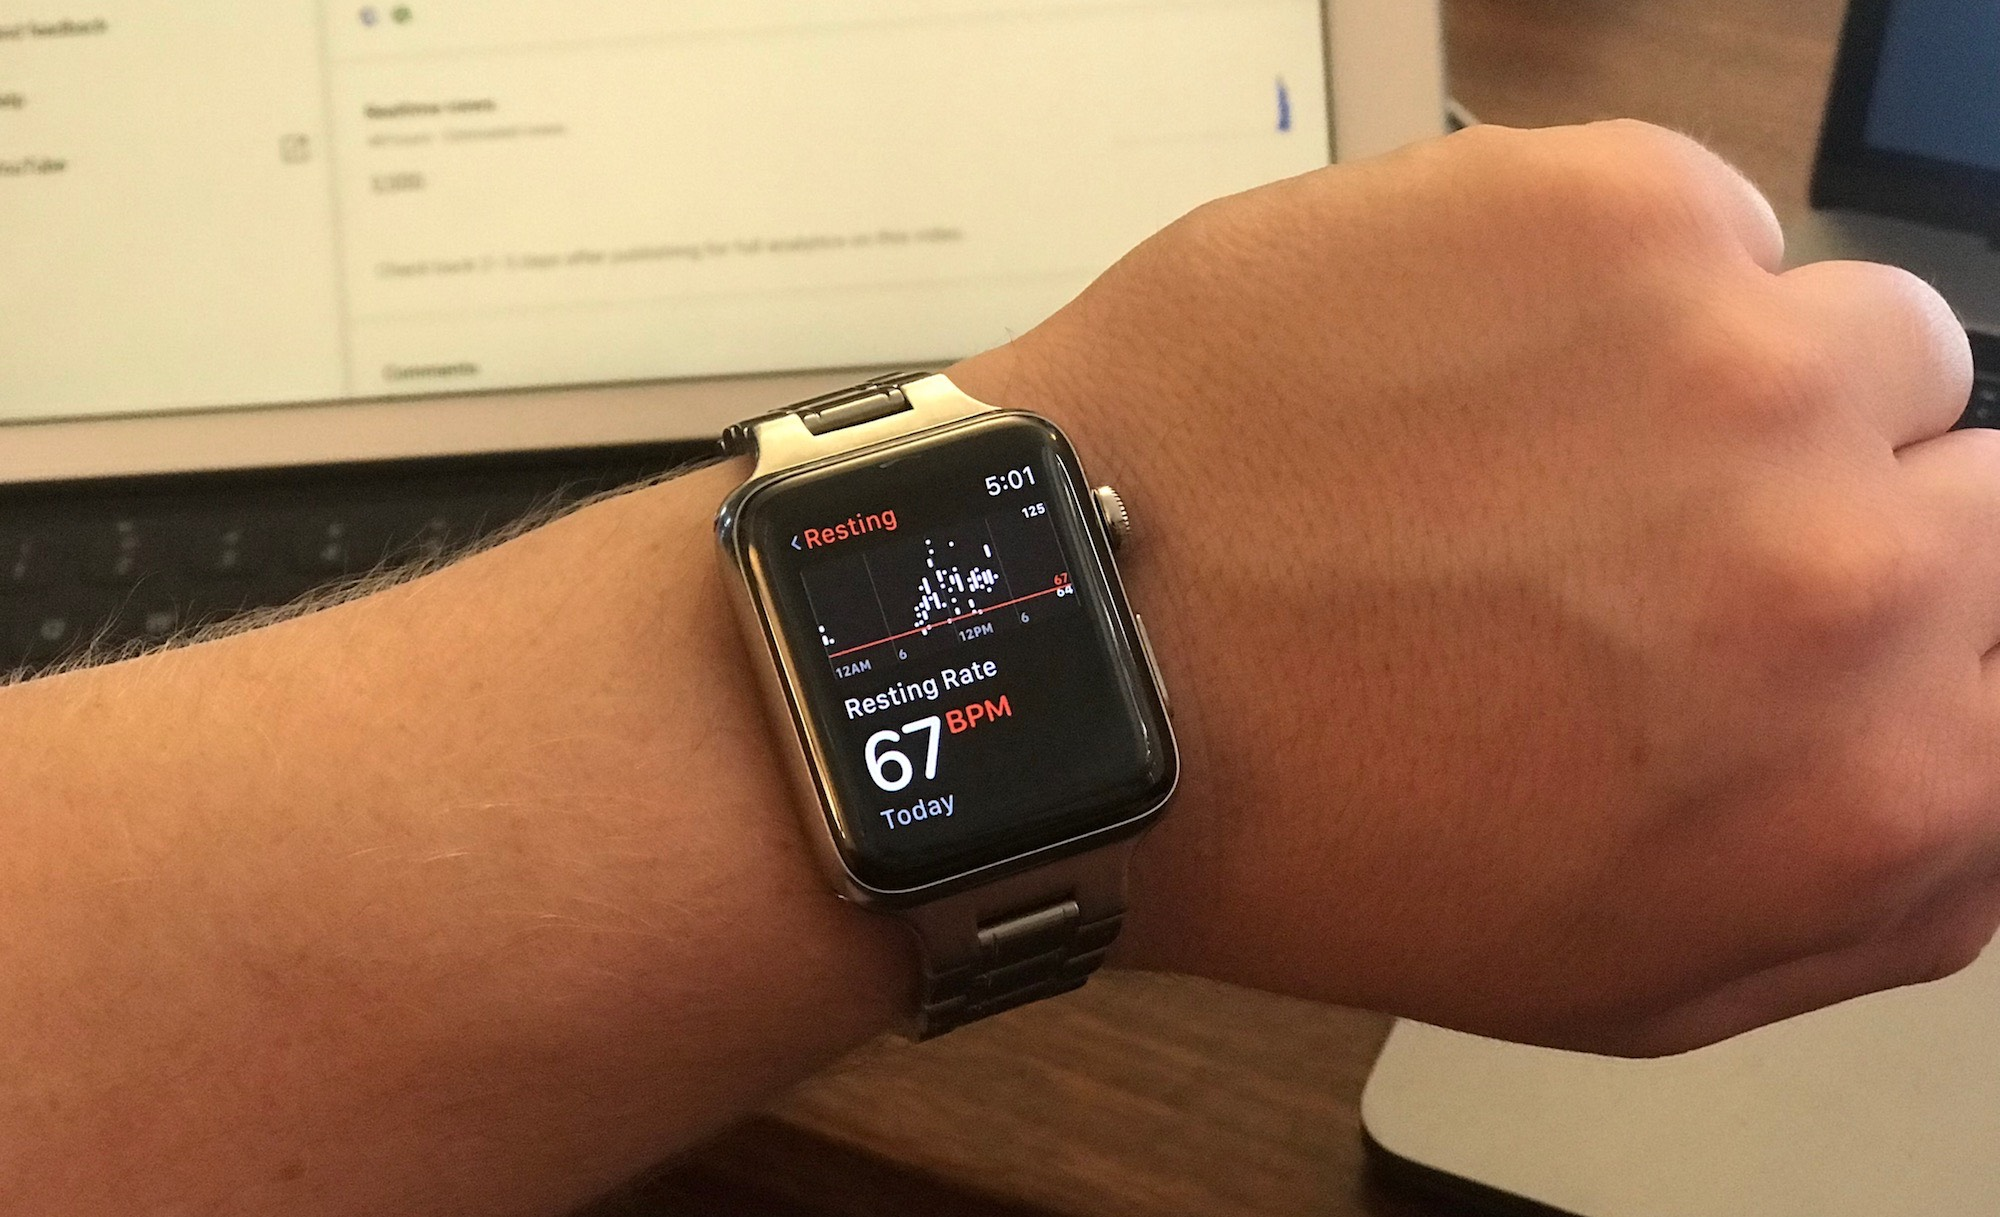 Elevated Heart Rate: Heart Rate app on Apple Watch